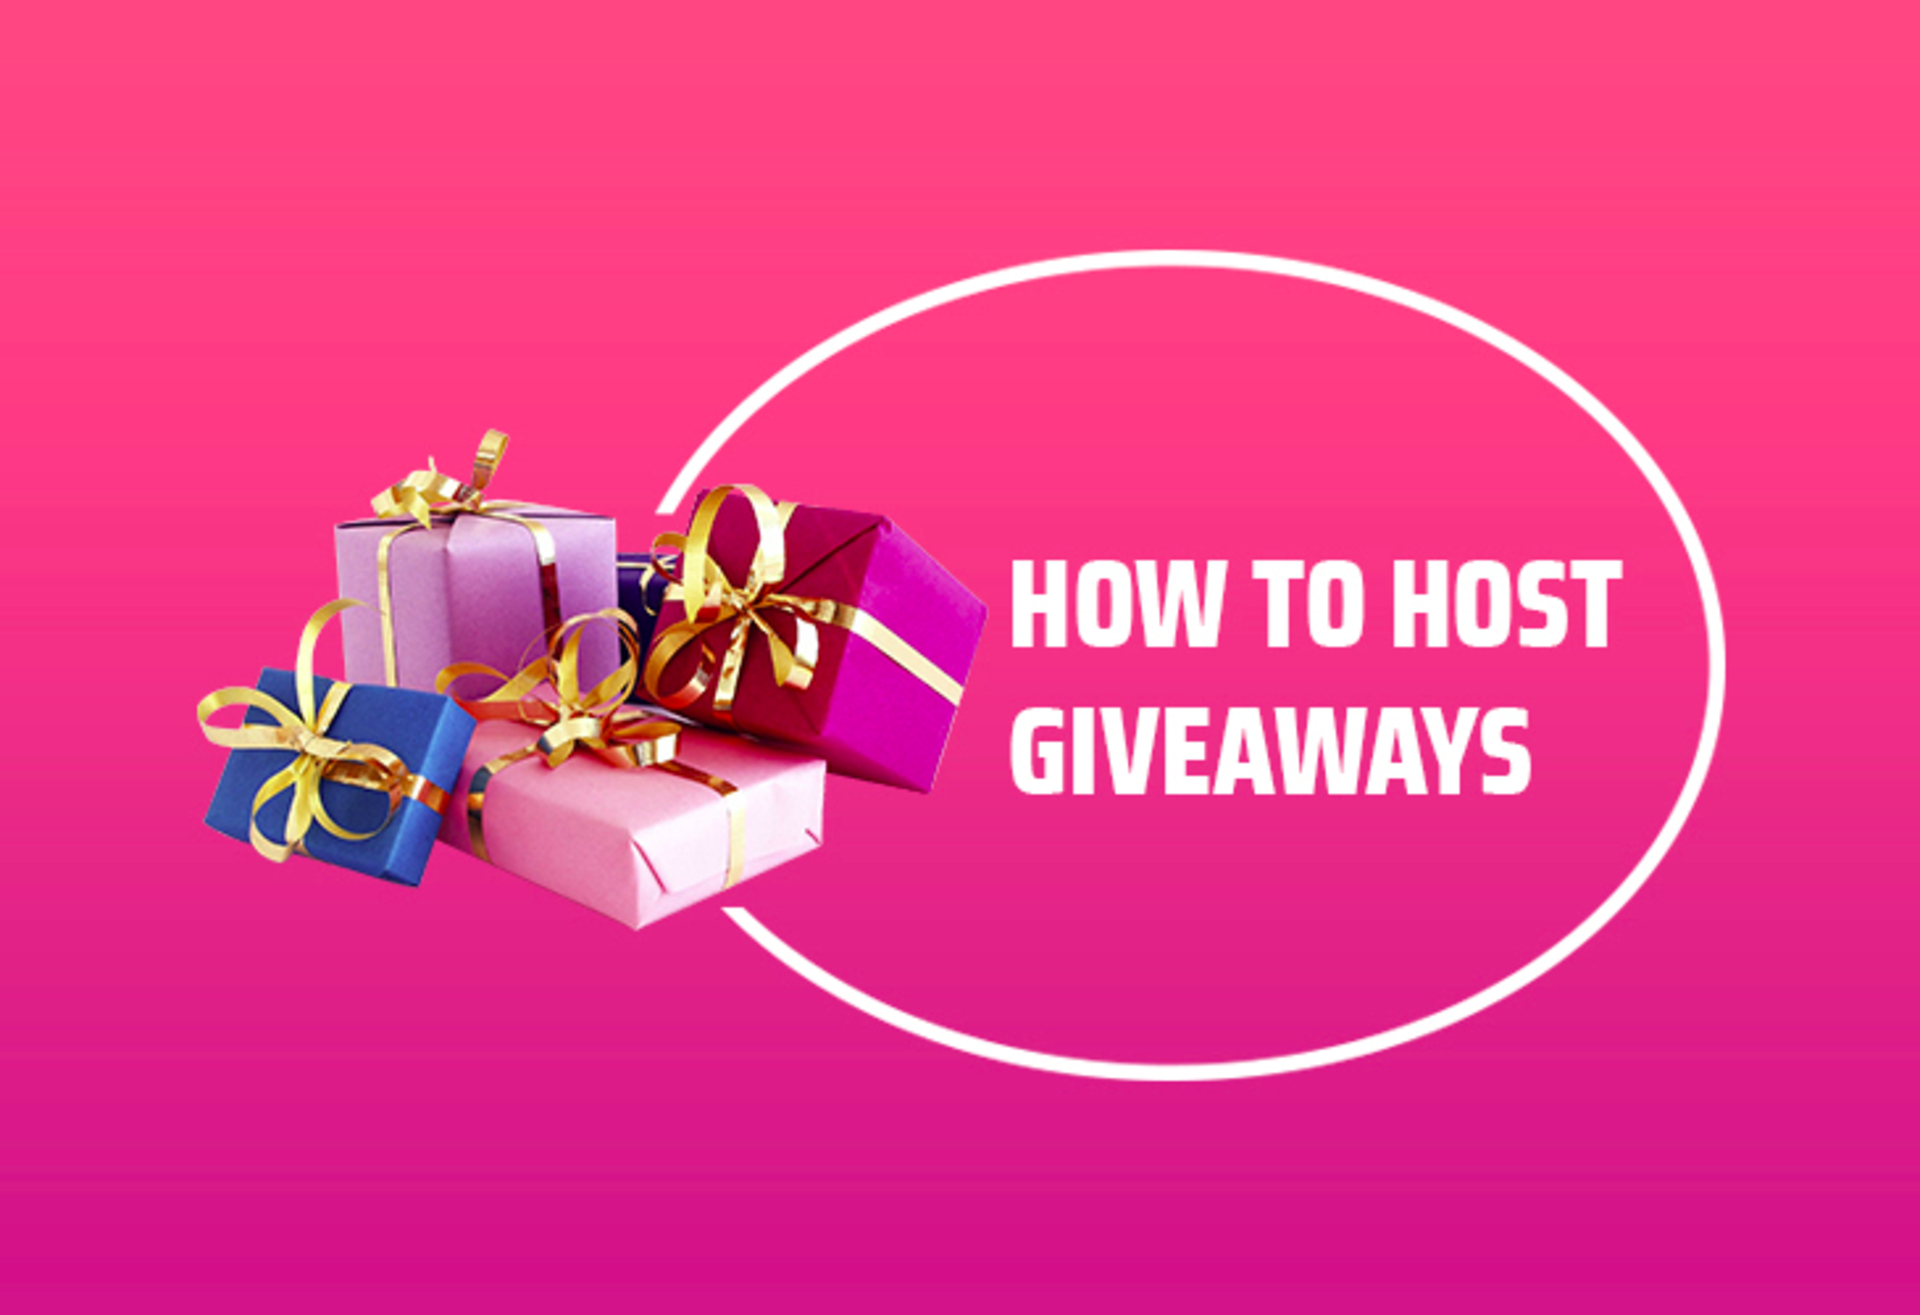 How to host giveaways: Using real examples from our Instagram image